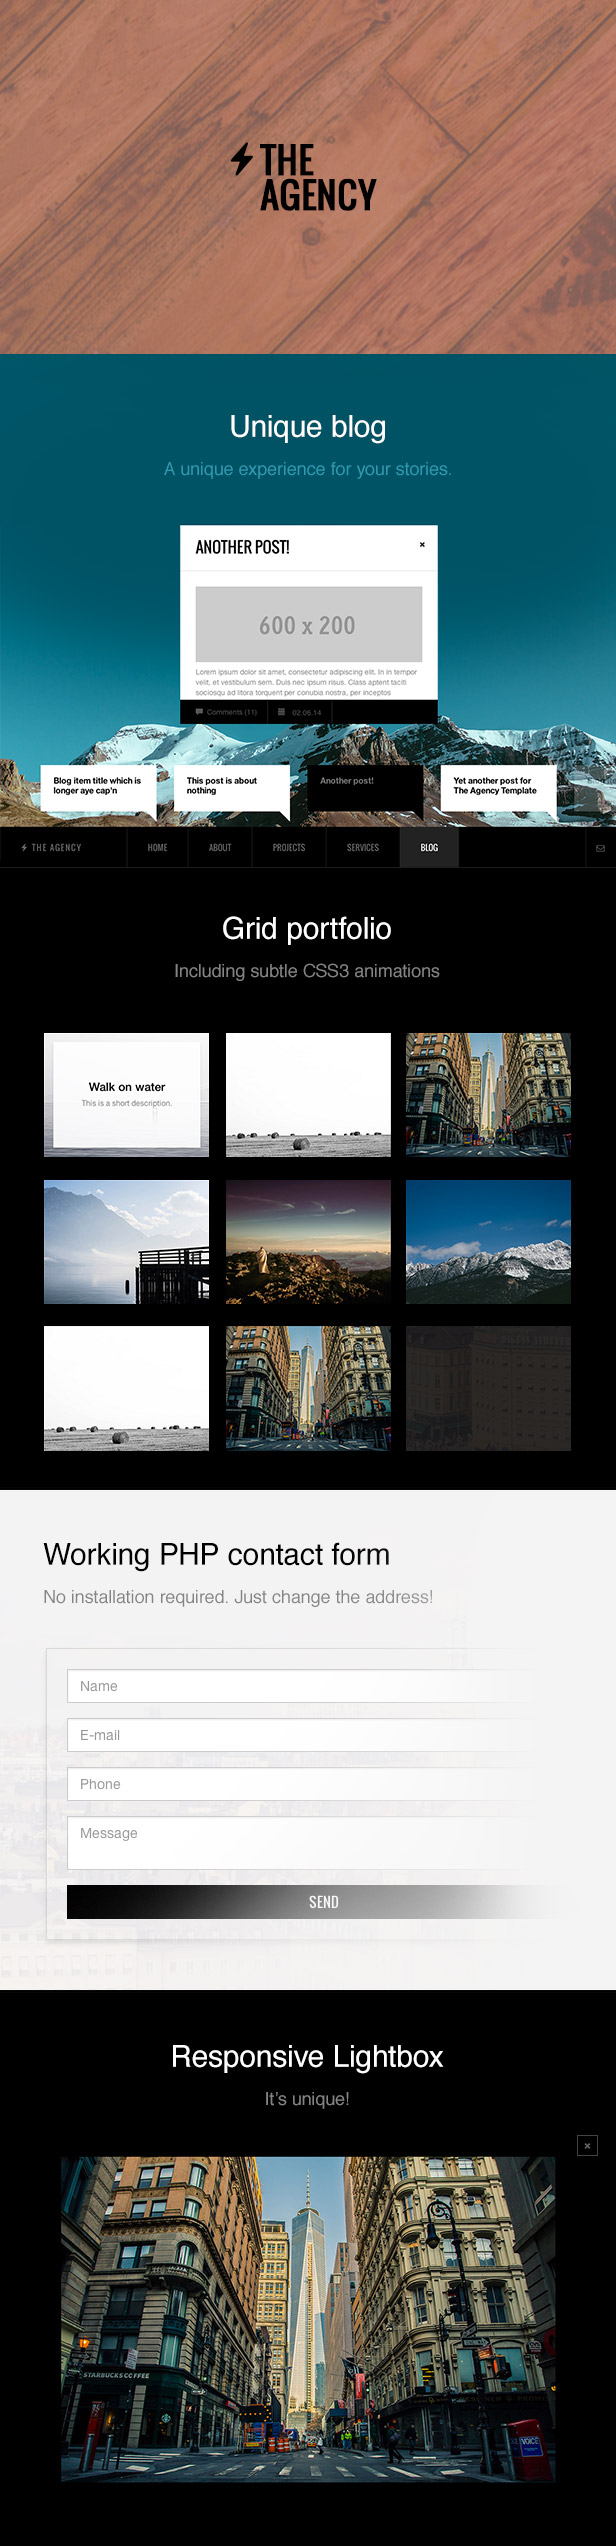 The Agency - A Responsive Agency Template